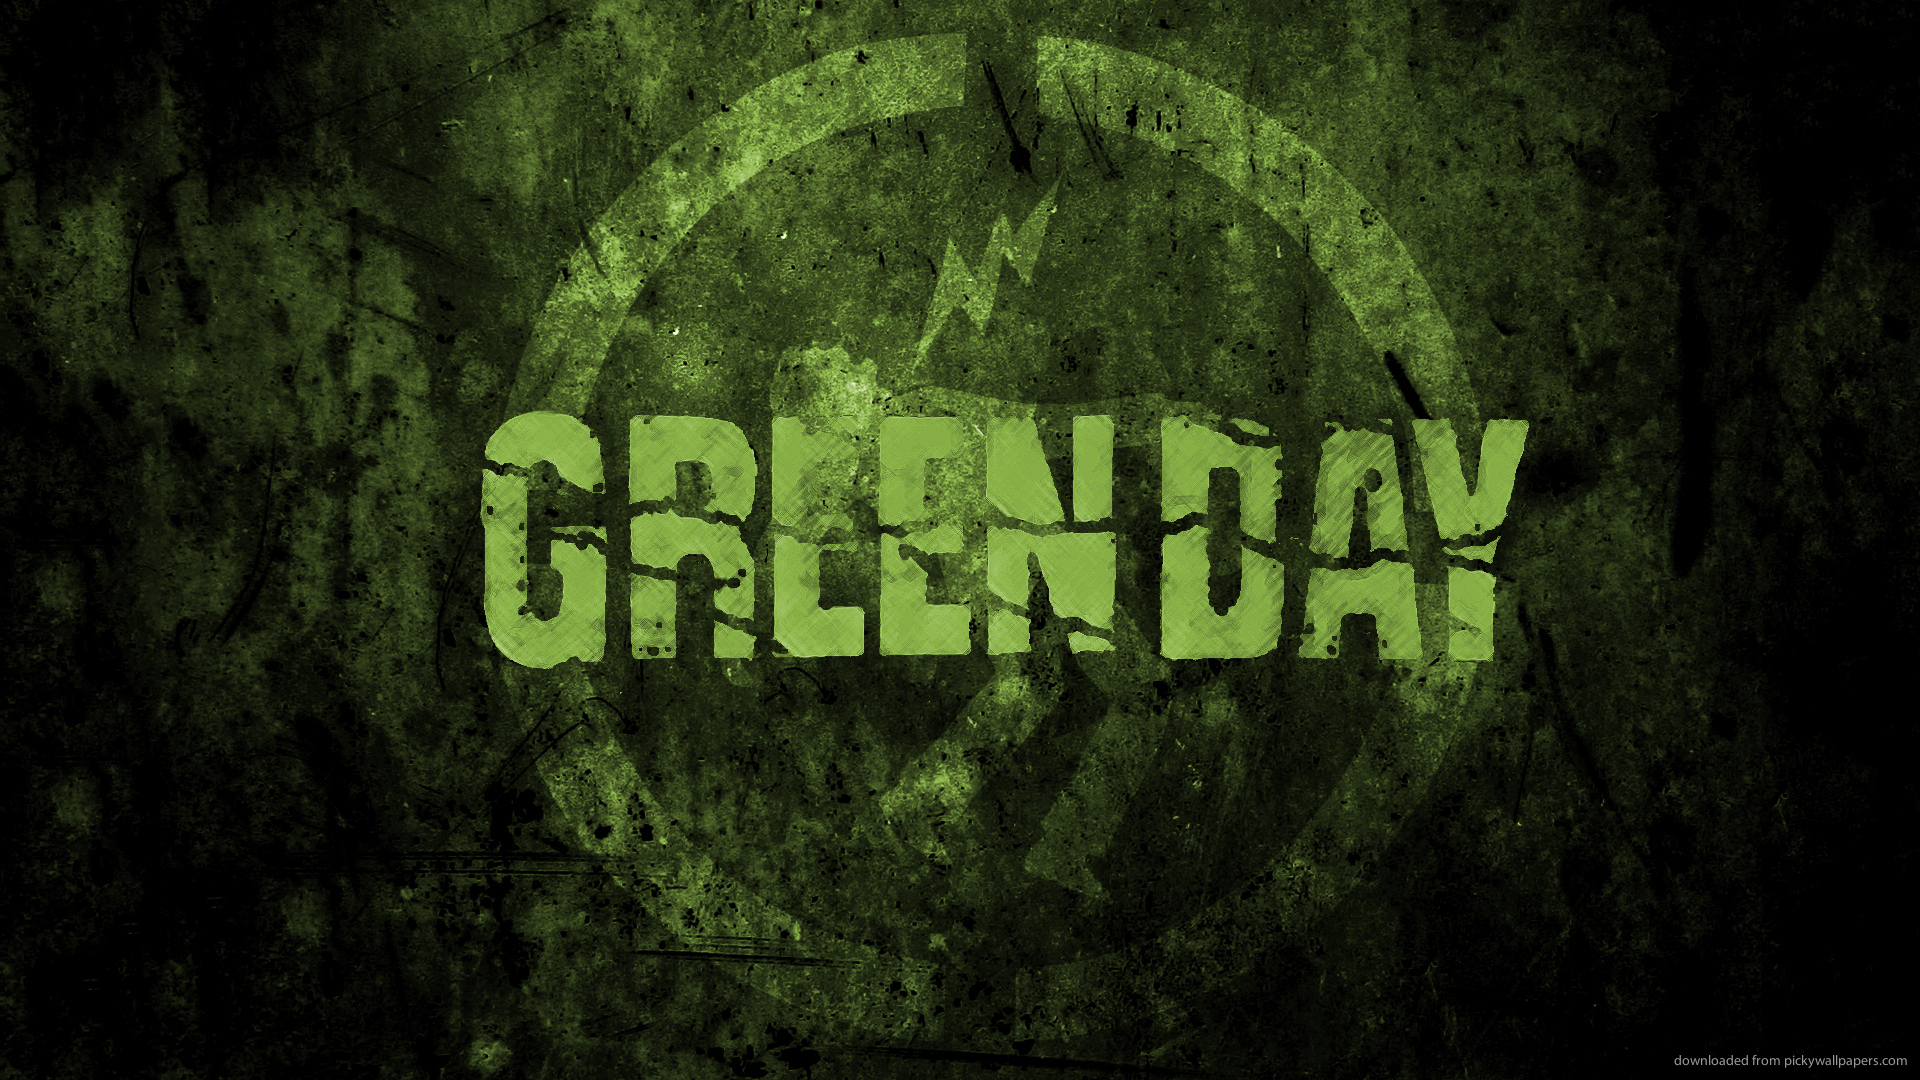 Green Day Picture For iPhone Blackberry iPad Green Day Screensaver 1920x1080